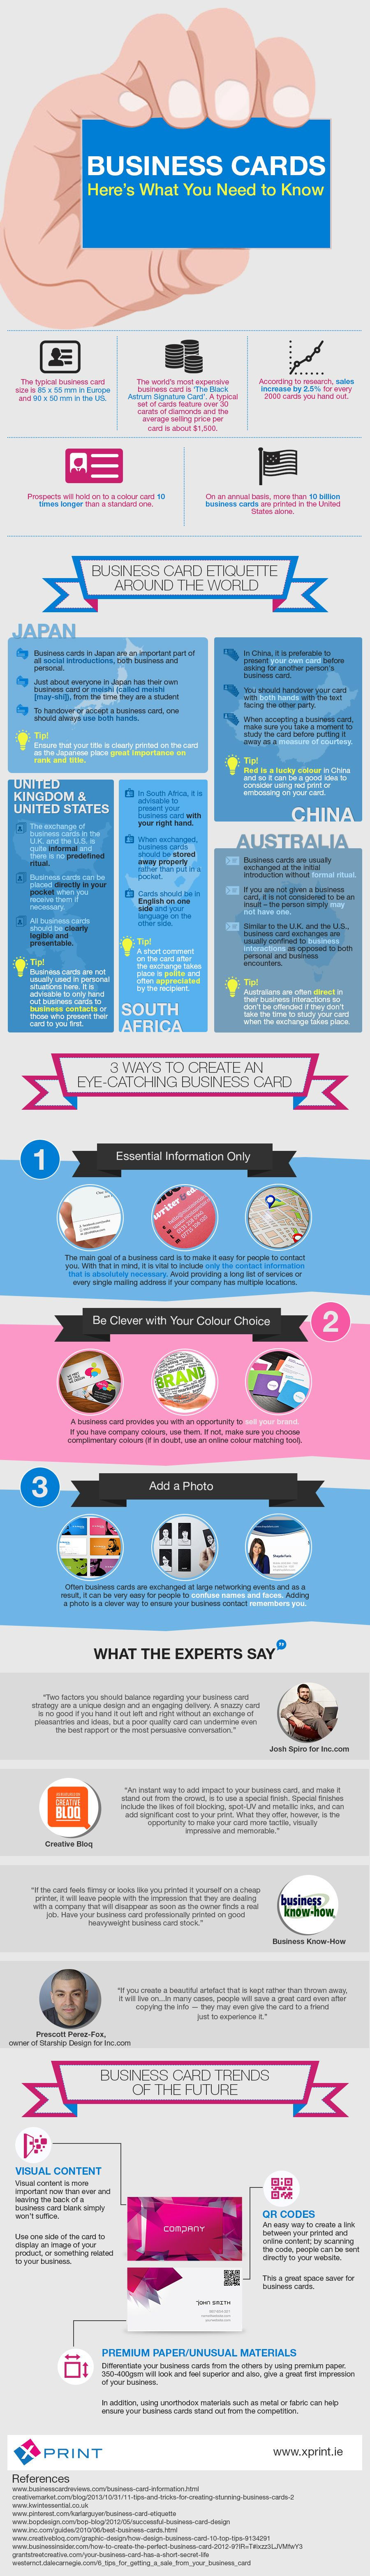 This infographic offers an insight into business card etiquette ...